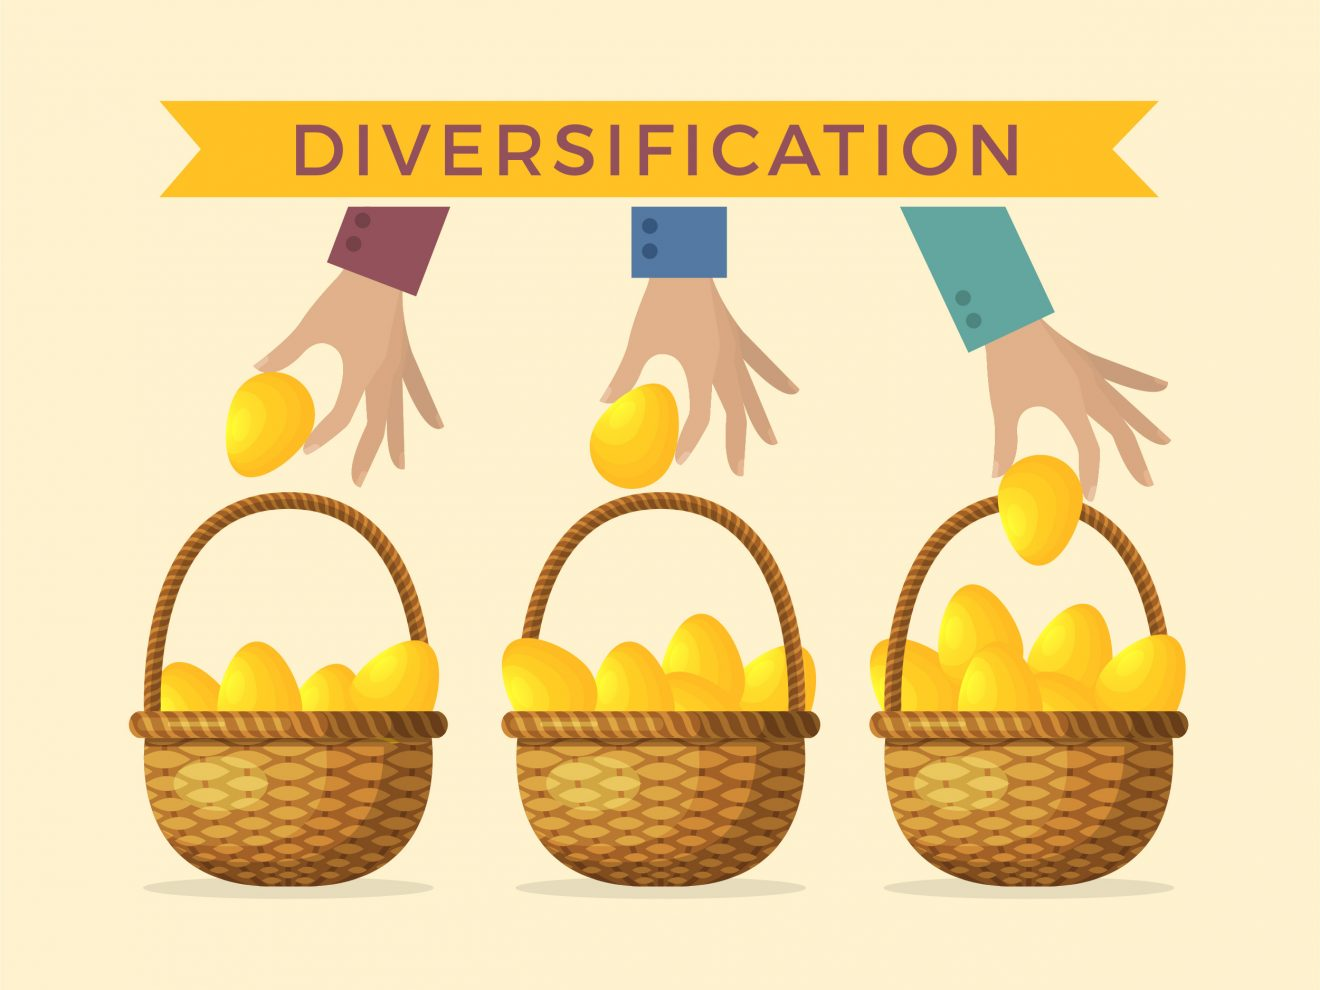 diversify assets to reduce risk